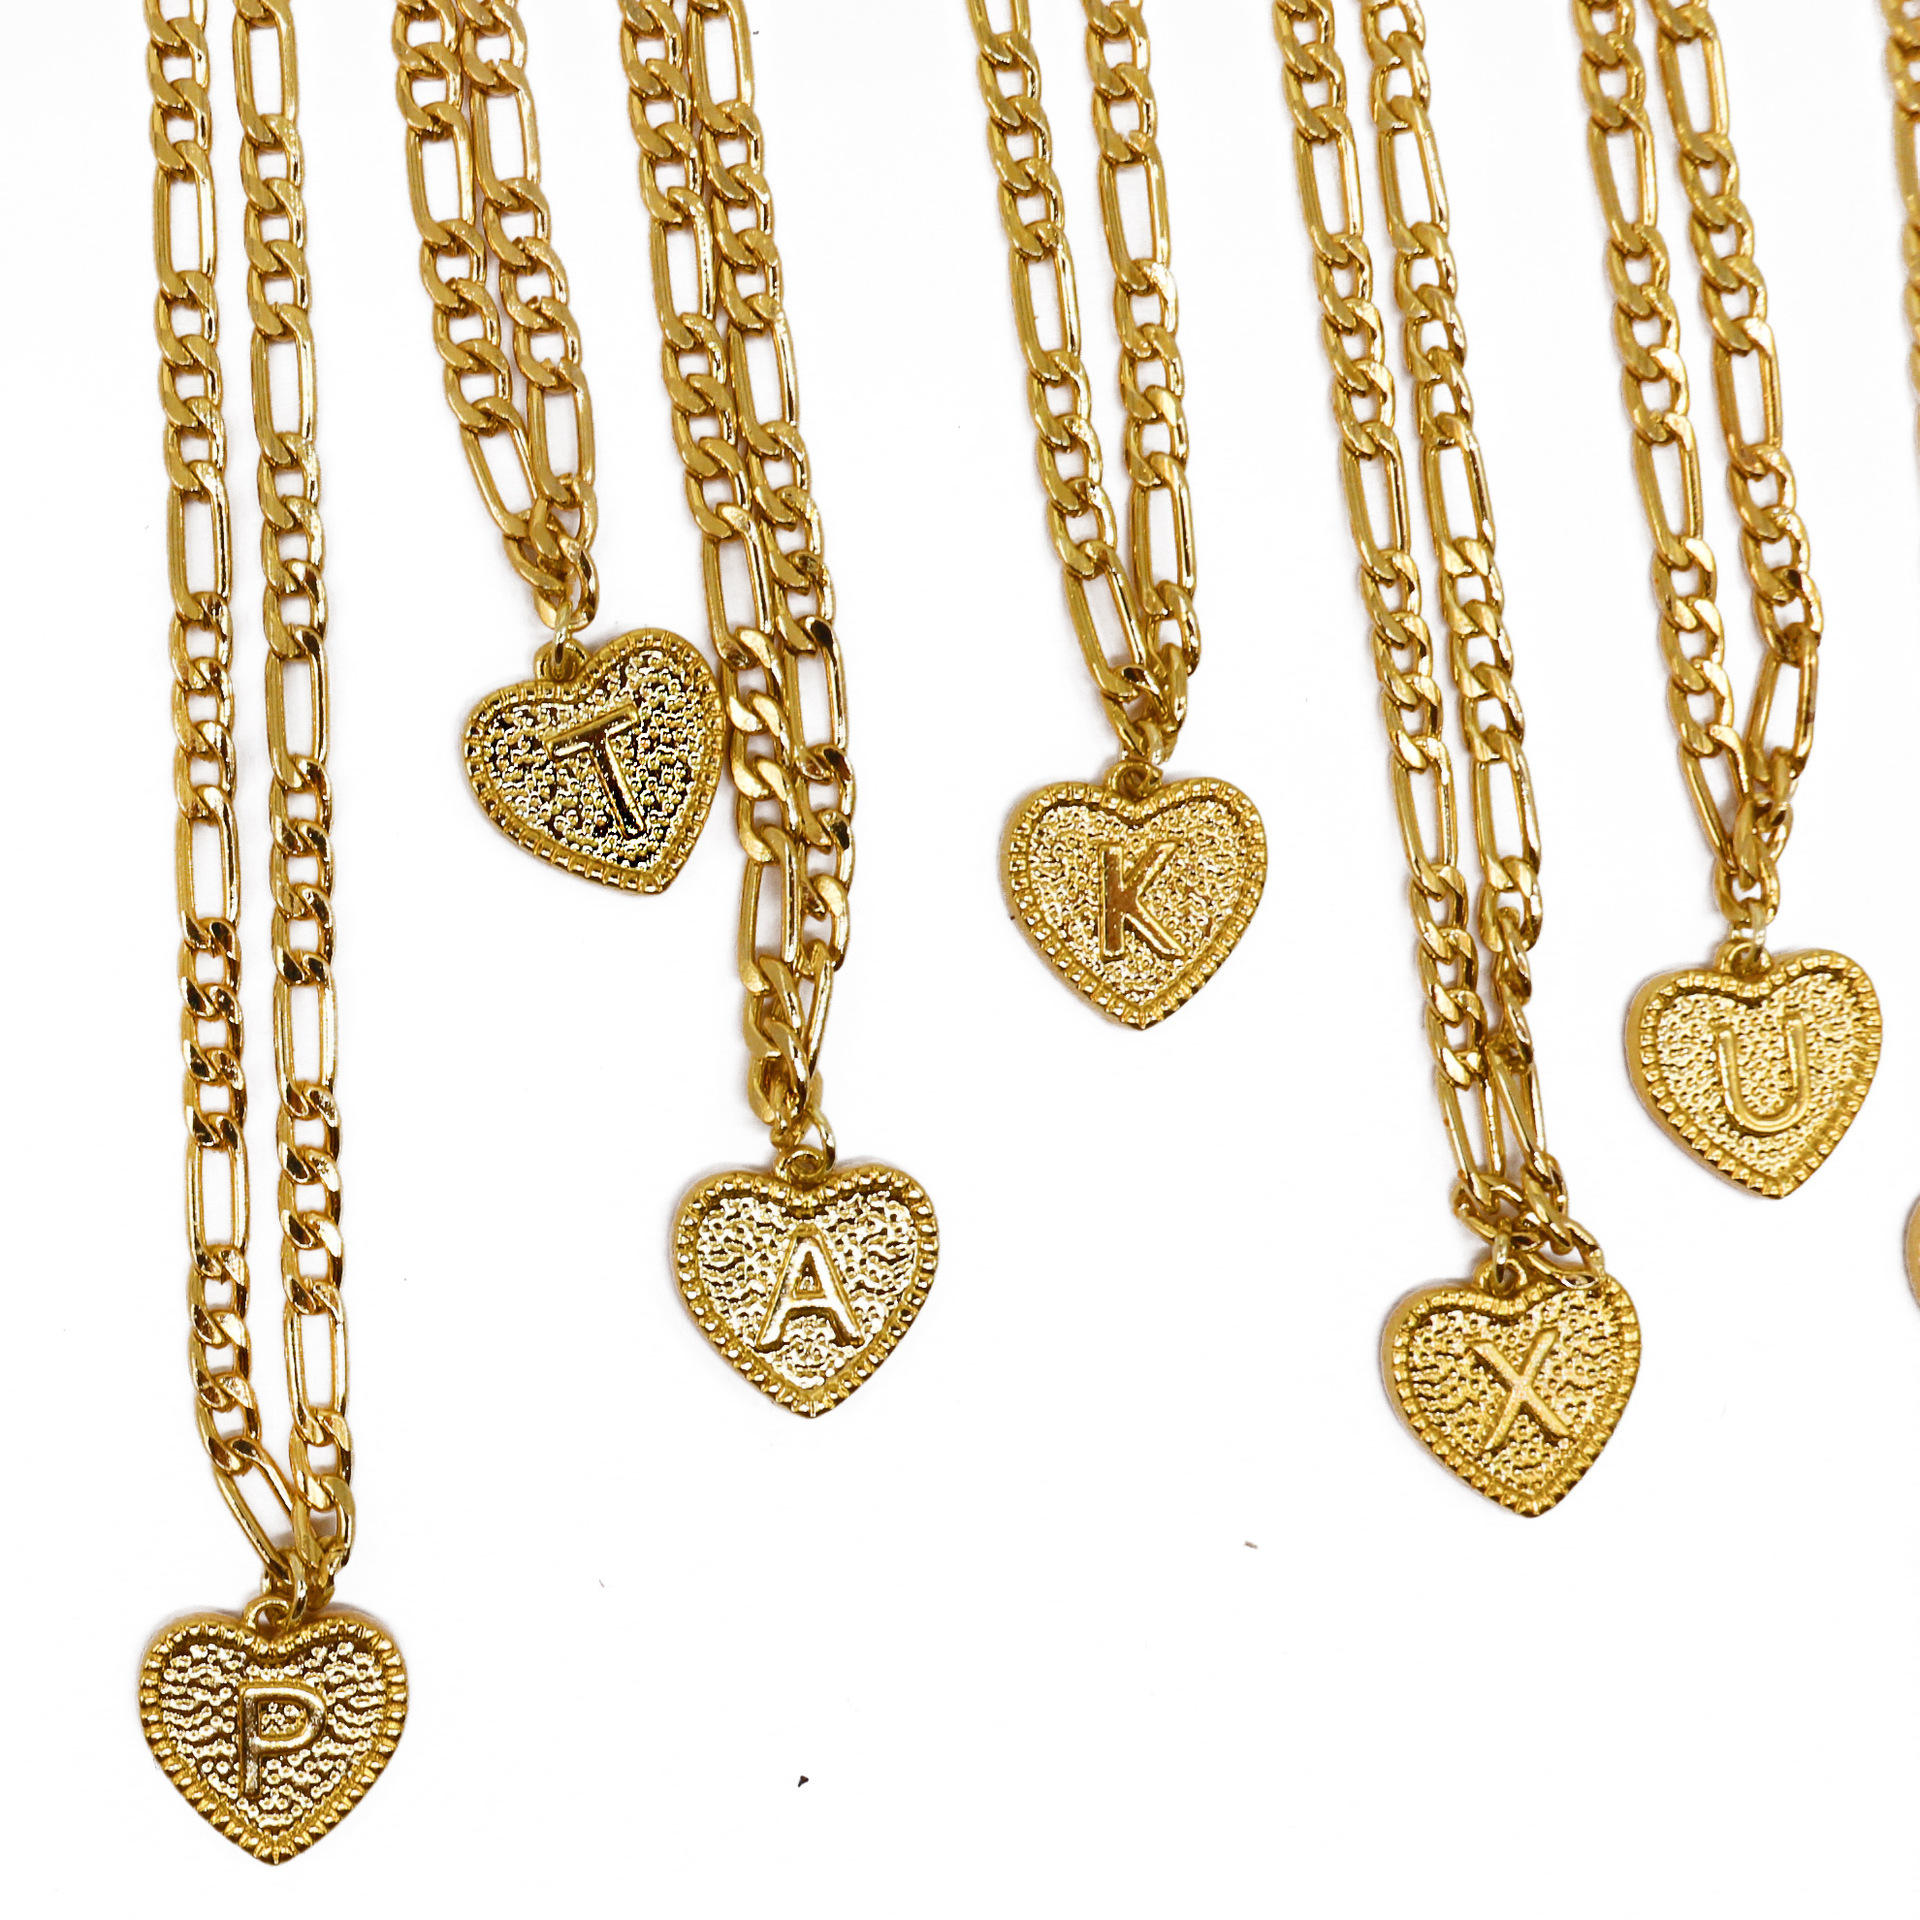 Stainless steel heart shape gold Charm jewelry initial anklets with letters